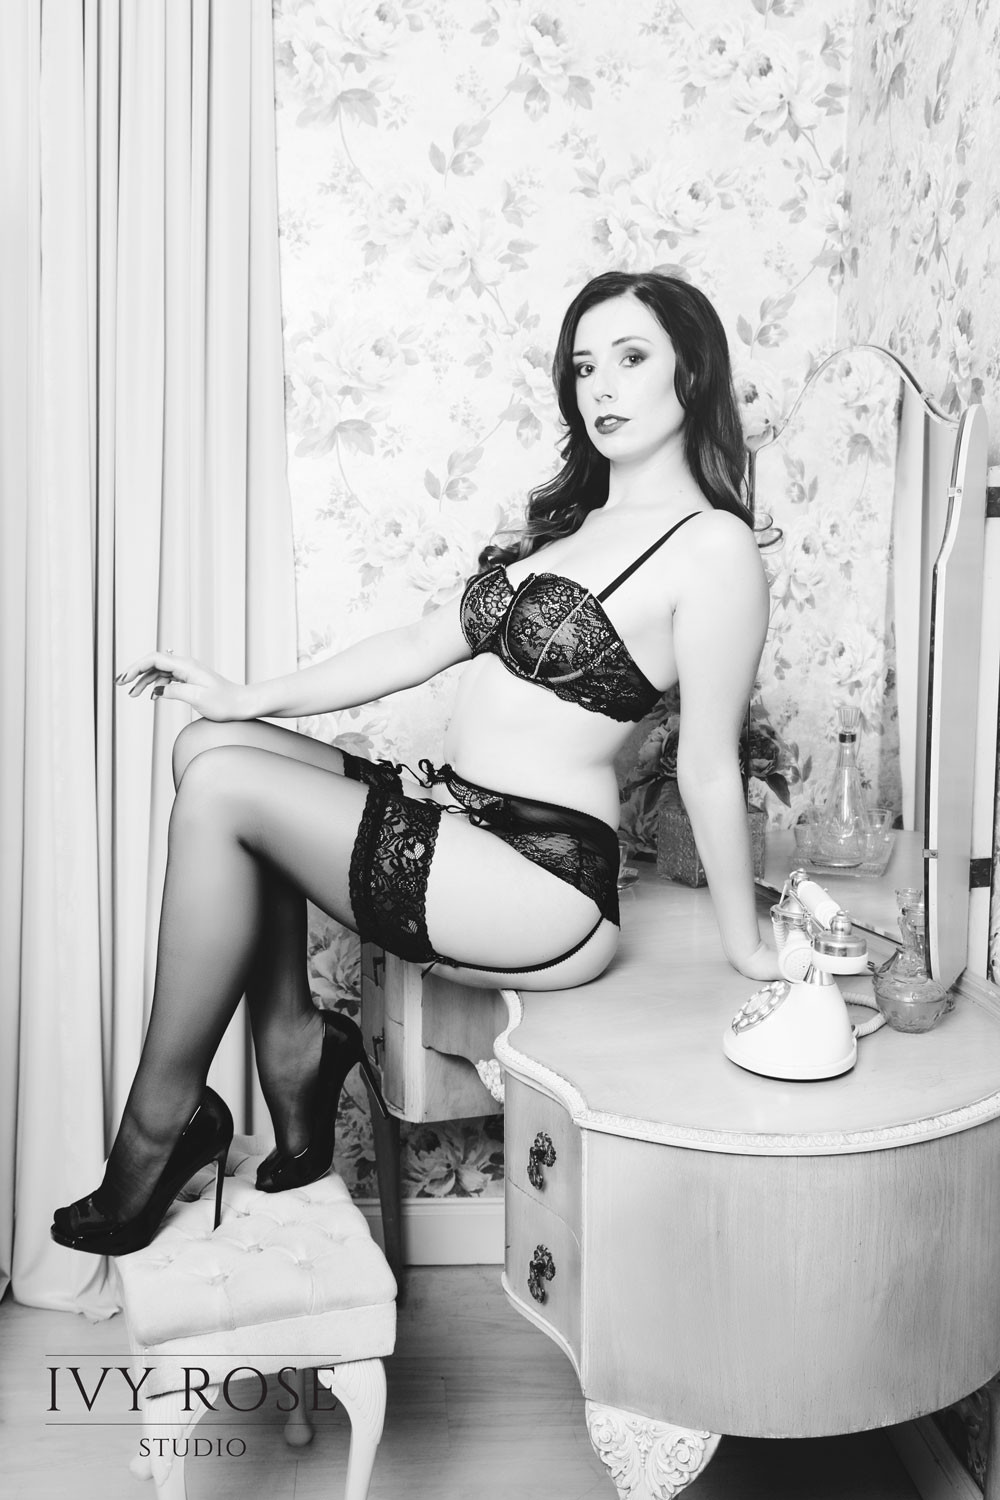 e7c2c72bff Manchester.jp  Pin-up-photography-studio.